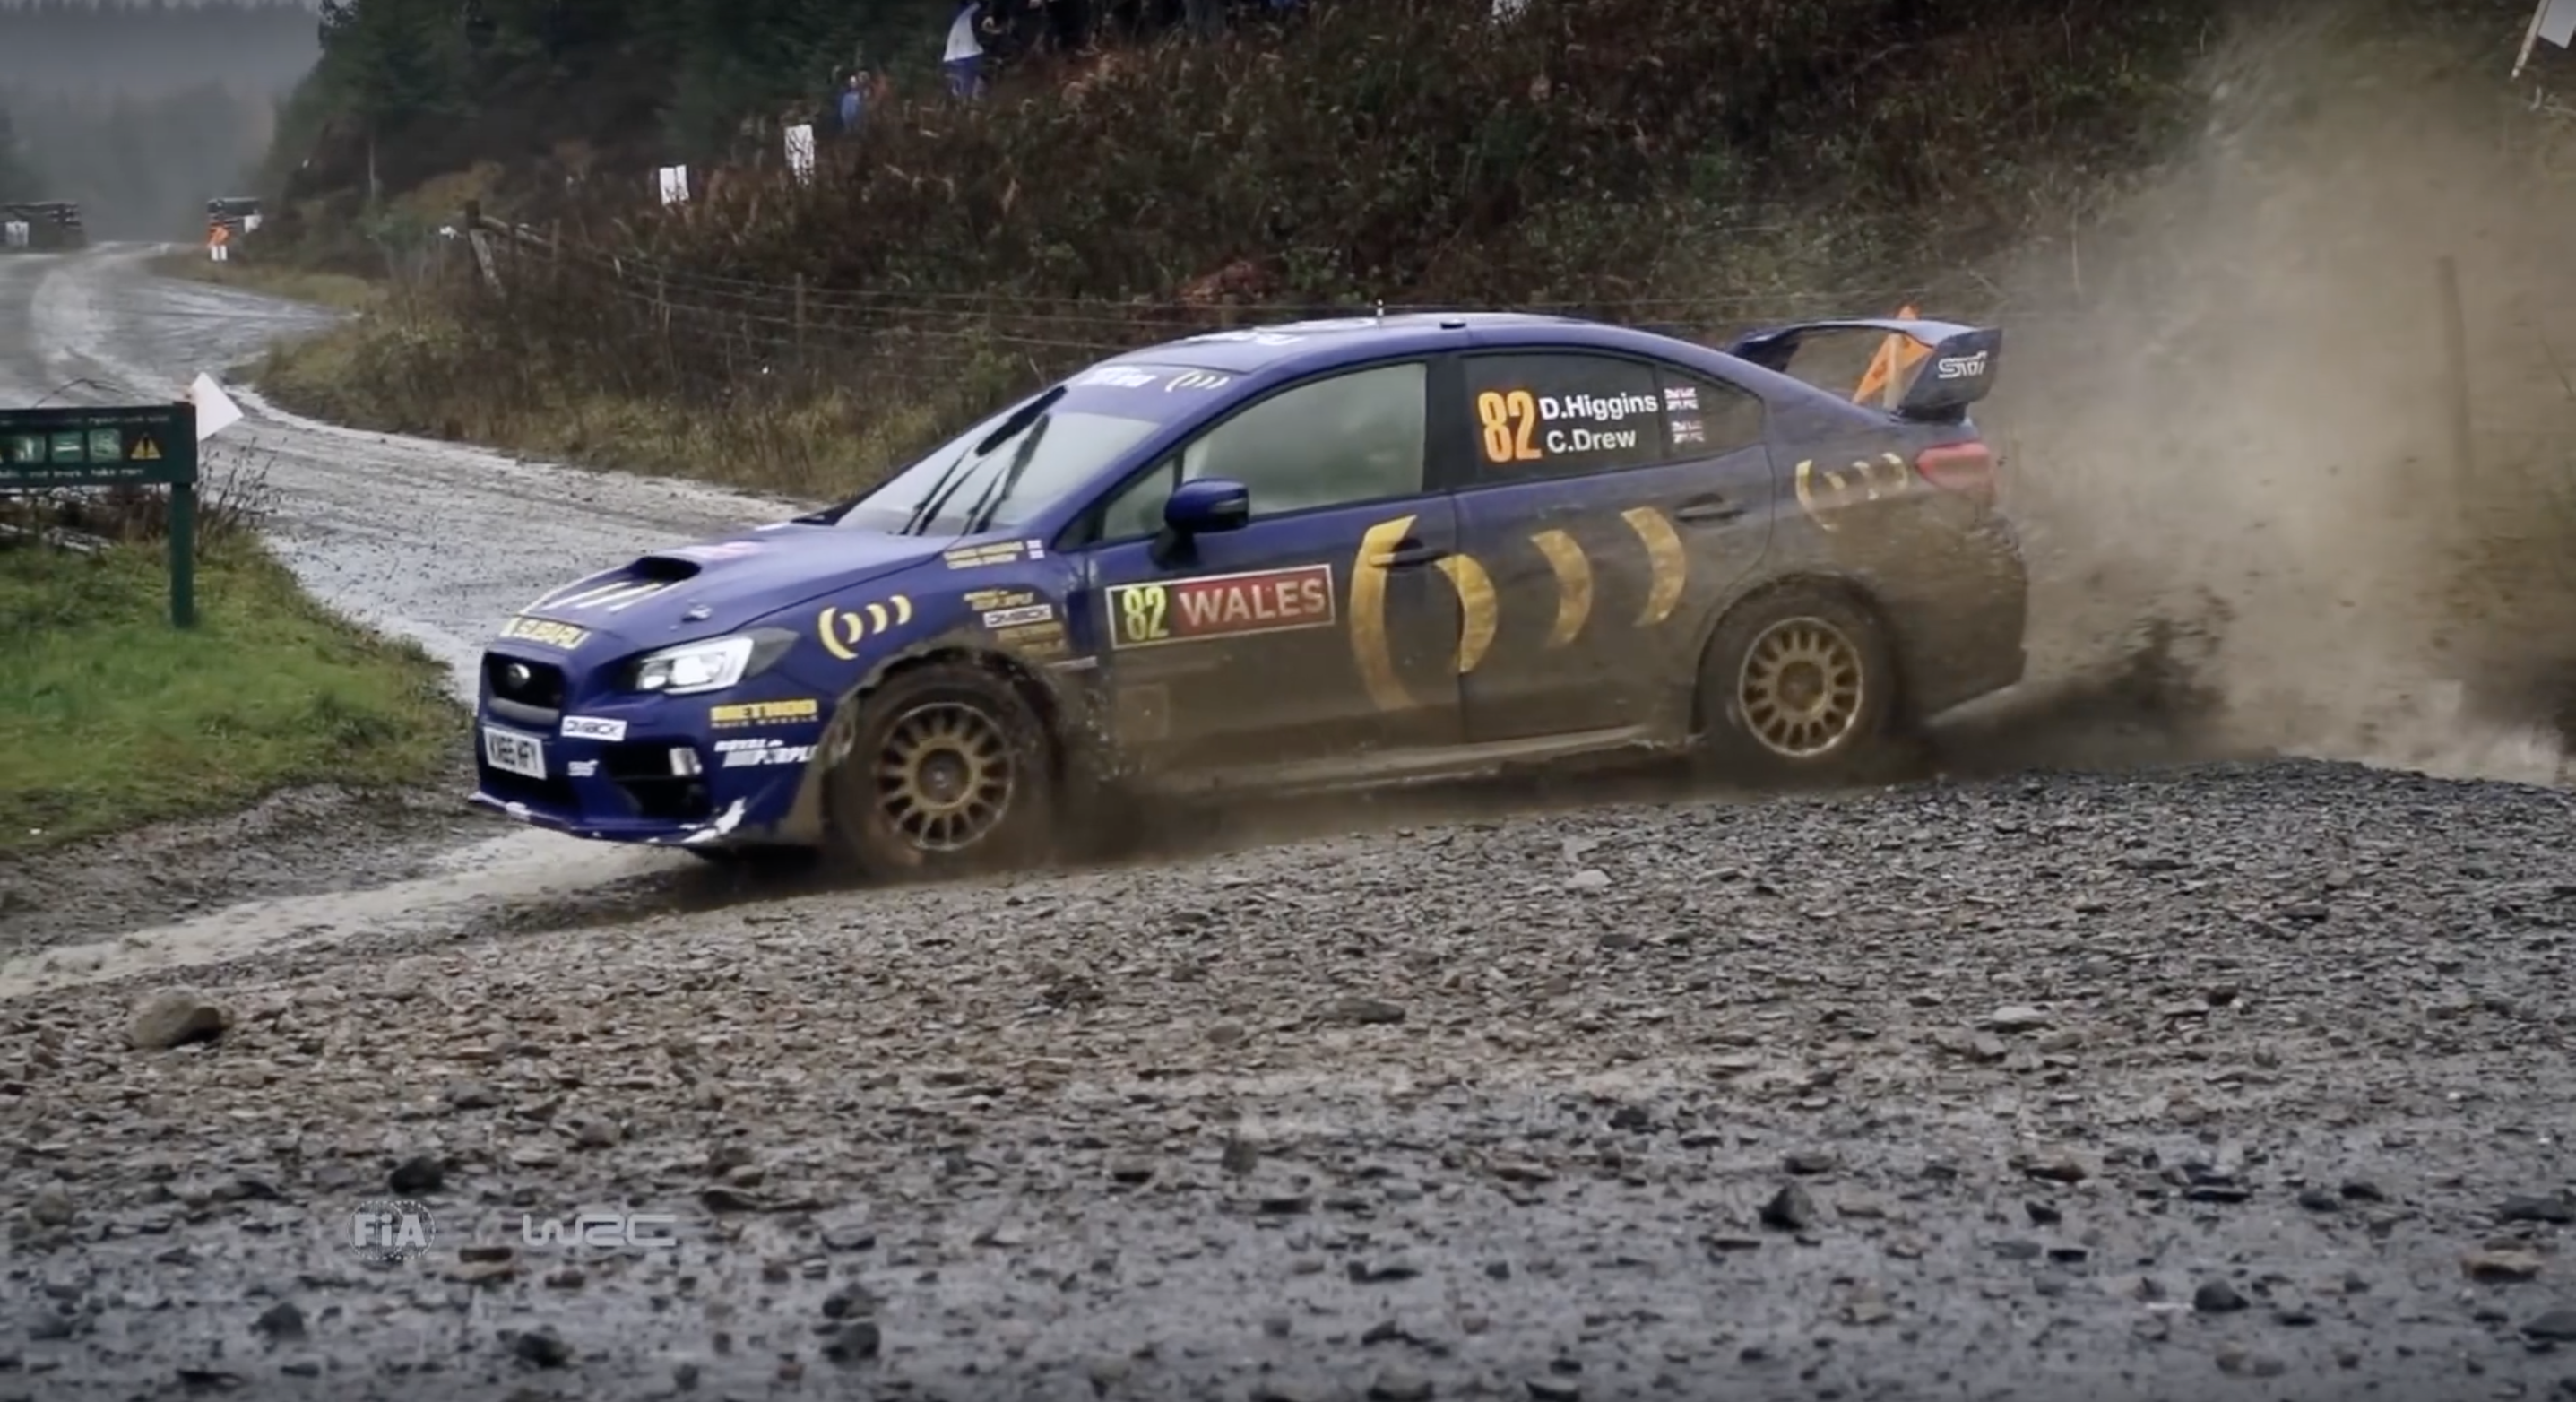 Launch Control subaru mcrae higgins